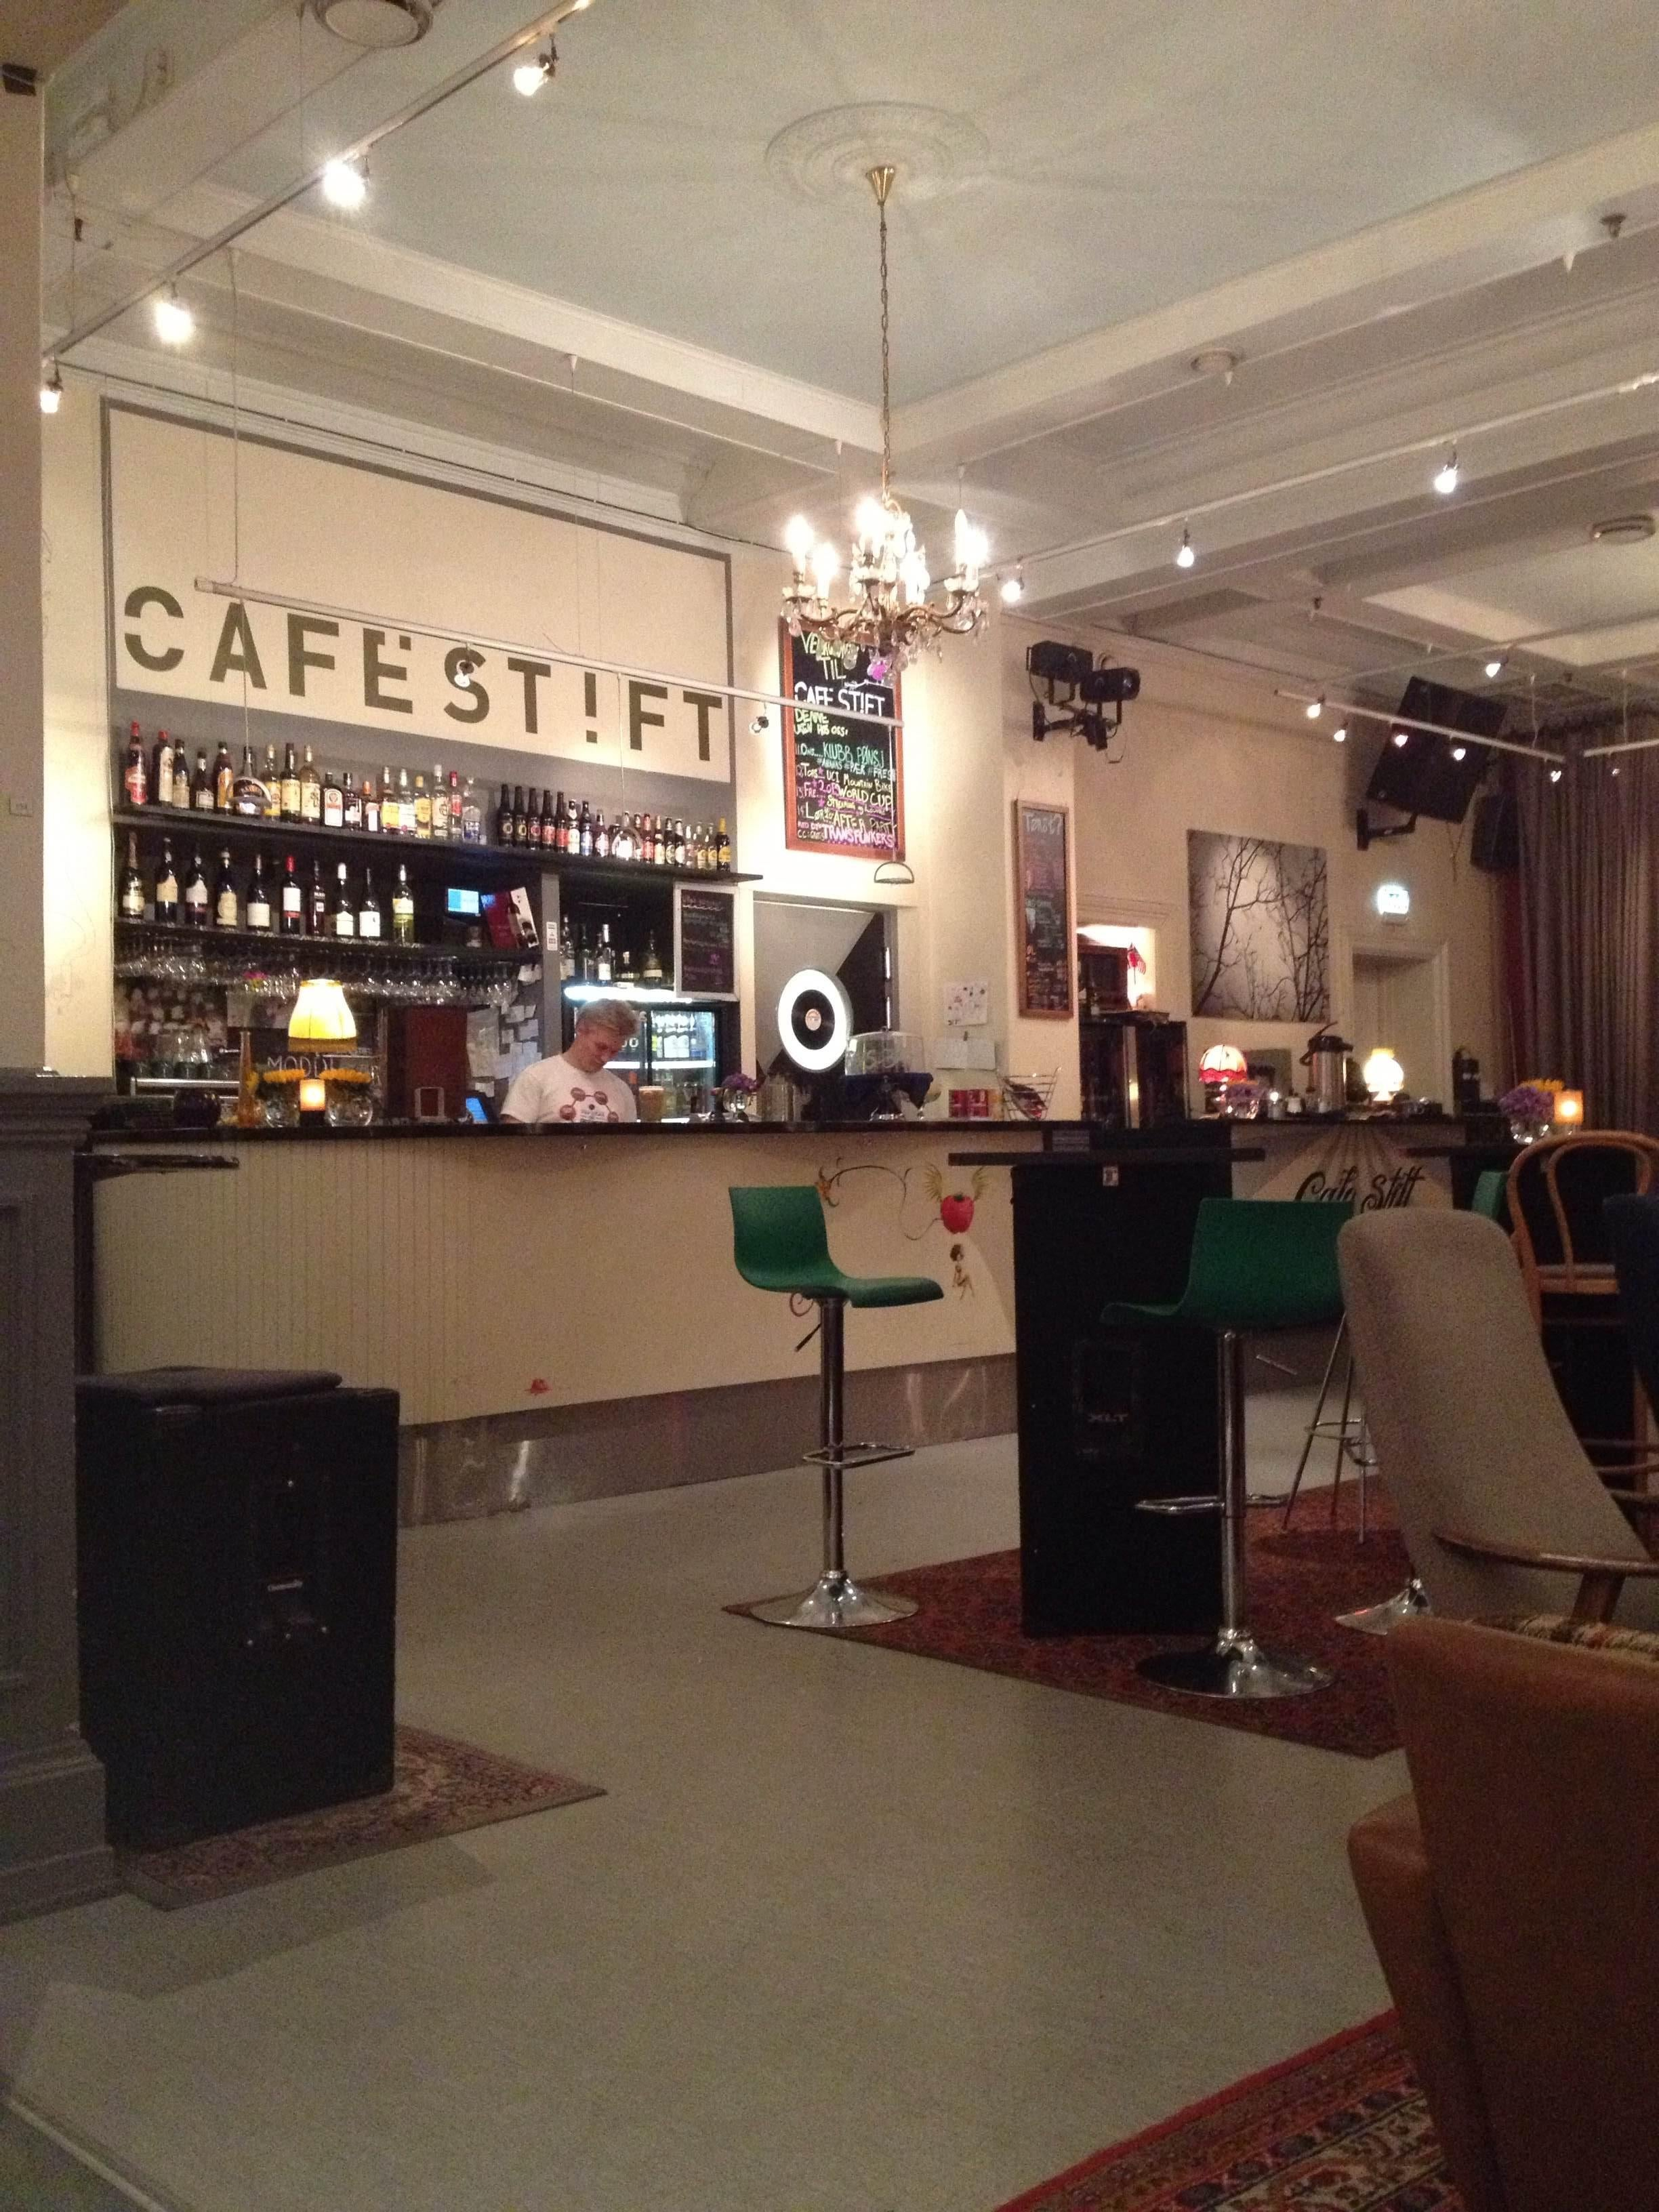 Restaurante en Cafe Stift